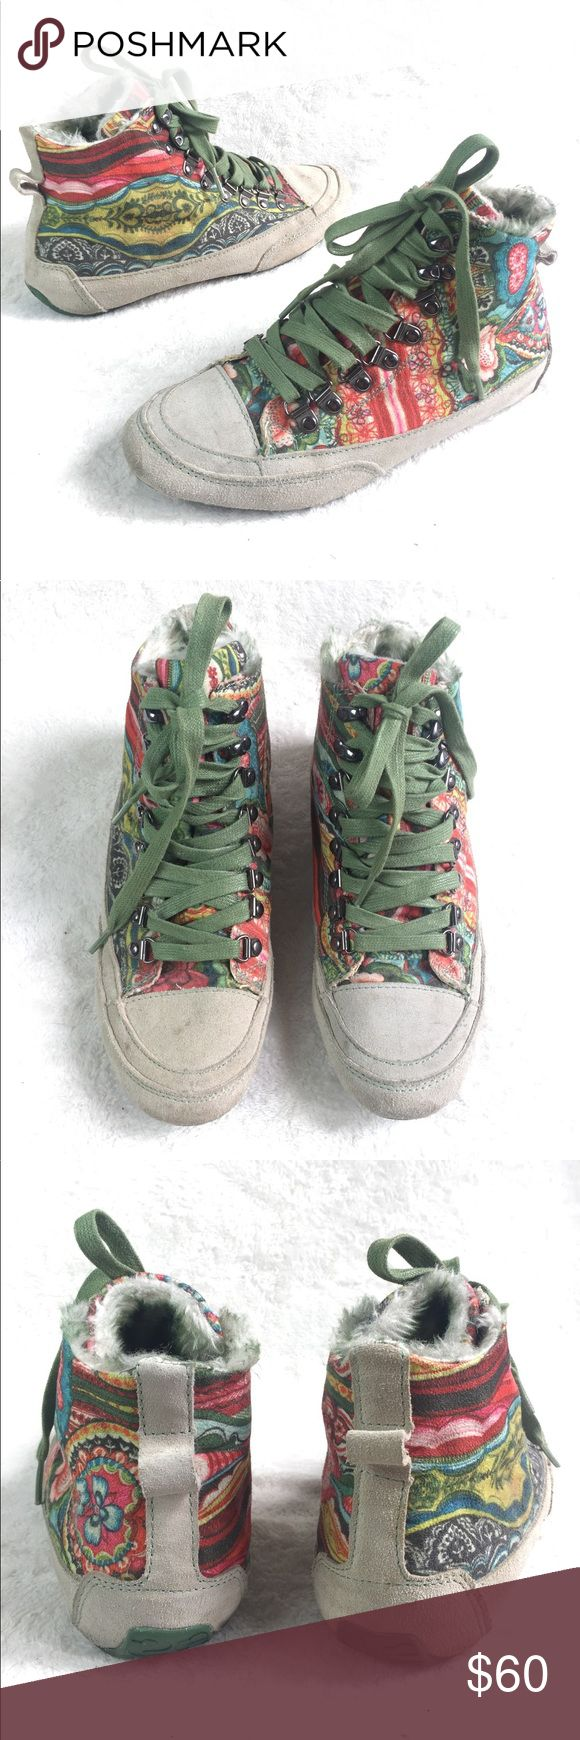 RARE Desigual Faux Fur Lined High Top Sneakers These are amazing! Love the colorful design and Faux fur interior. Upper is made of fabric and Suede Leather. Some minor wear, still in great condition. No box. Bundle 2 or more items to get discount  Desigual Shoes Sneakers